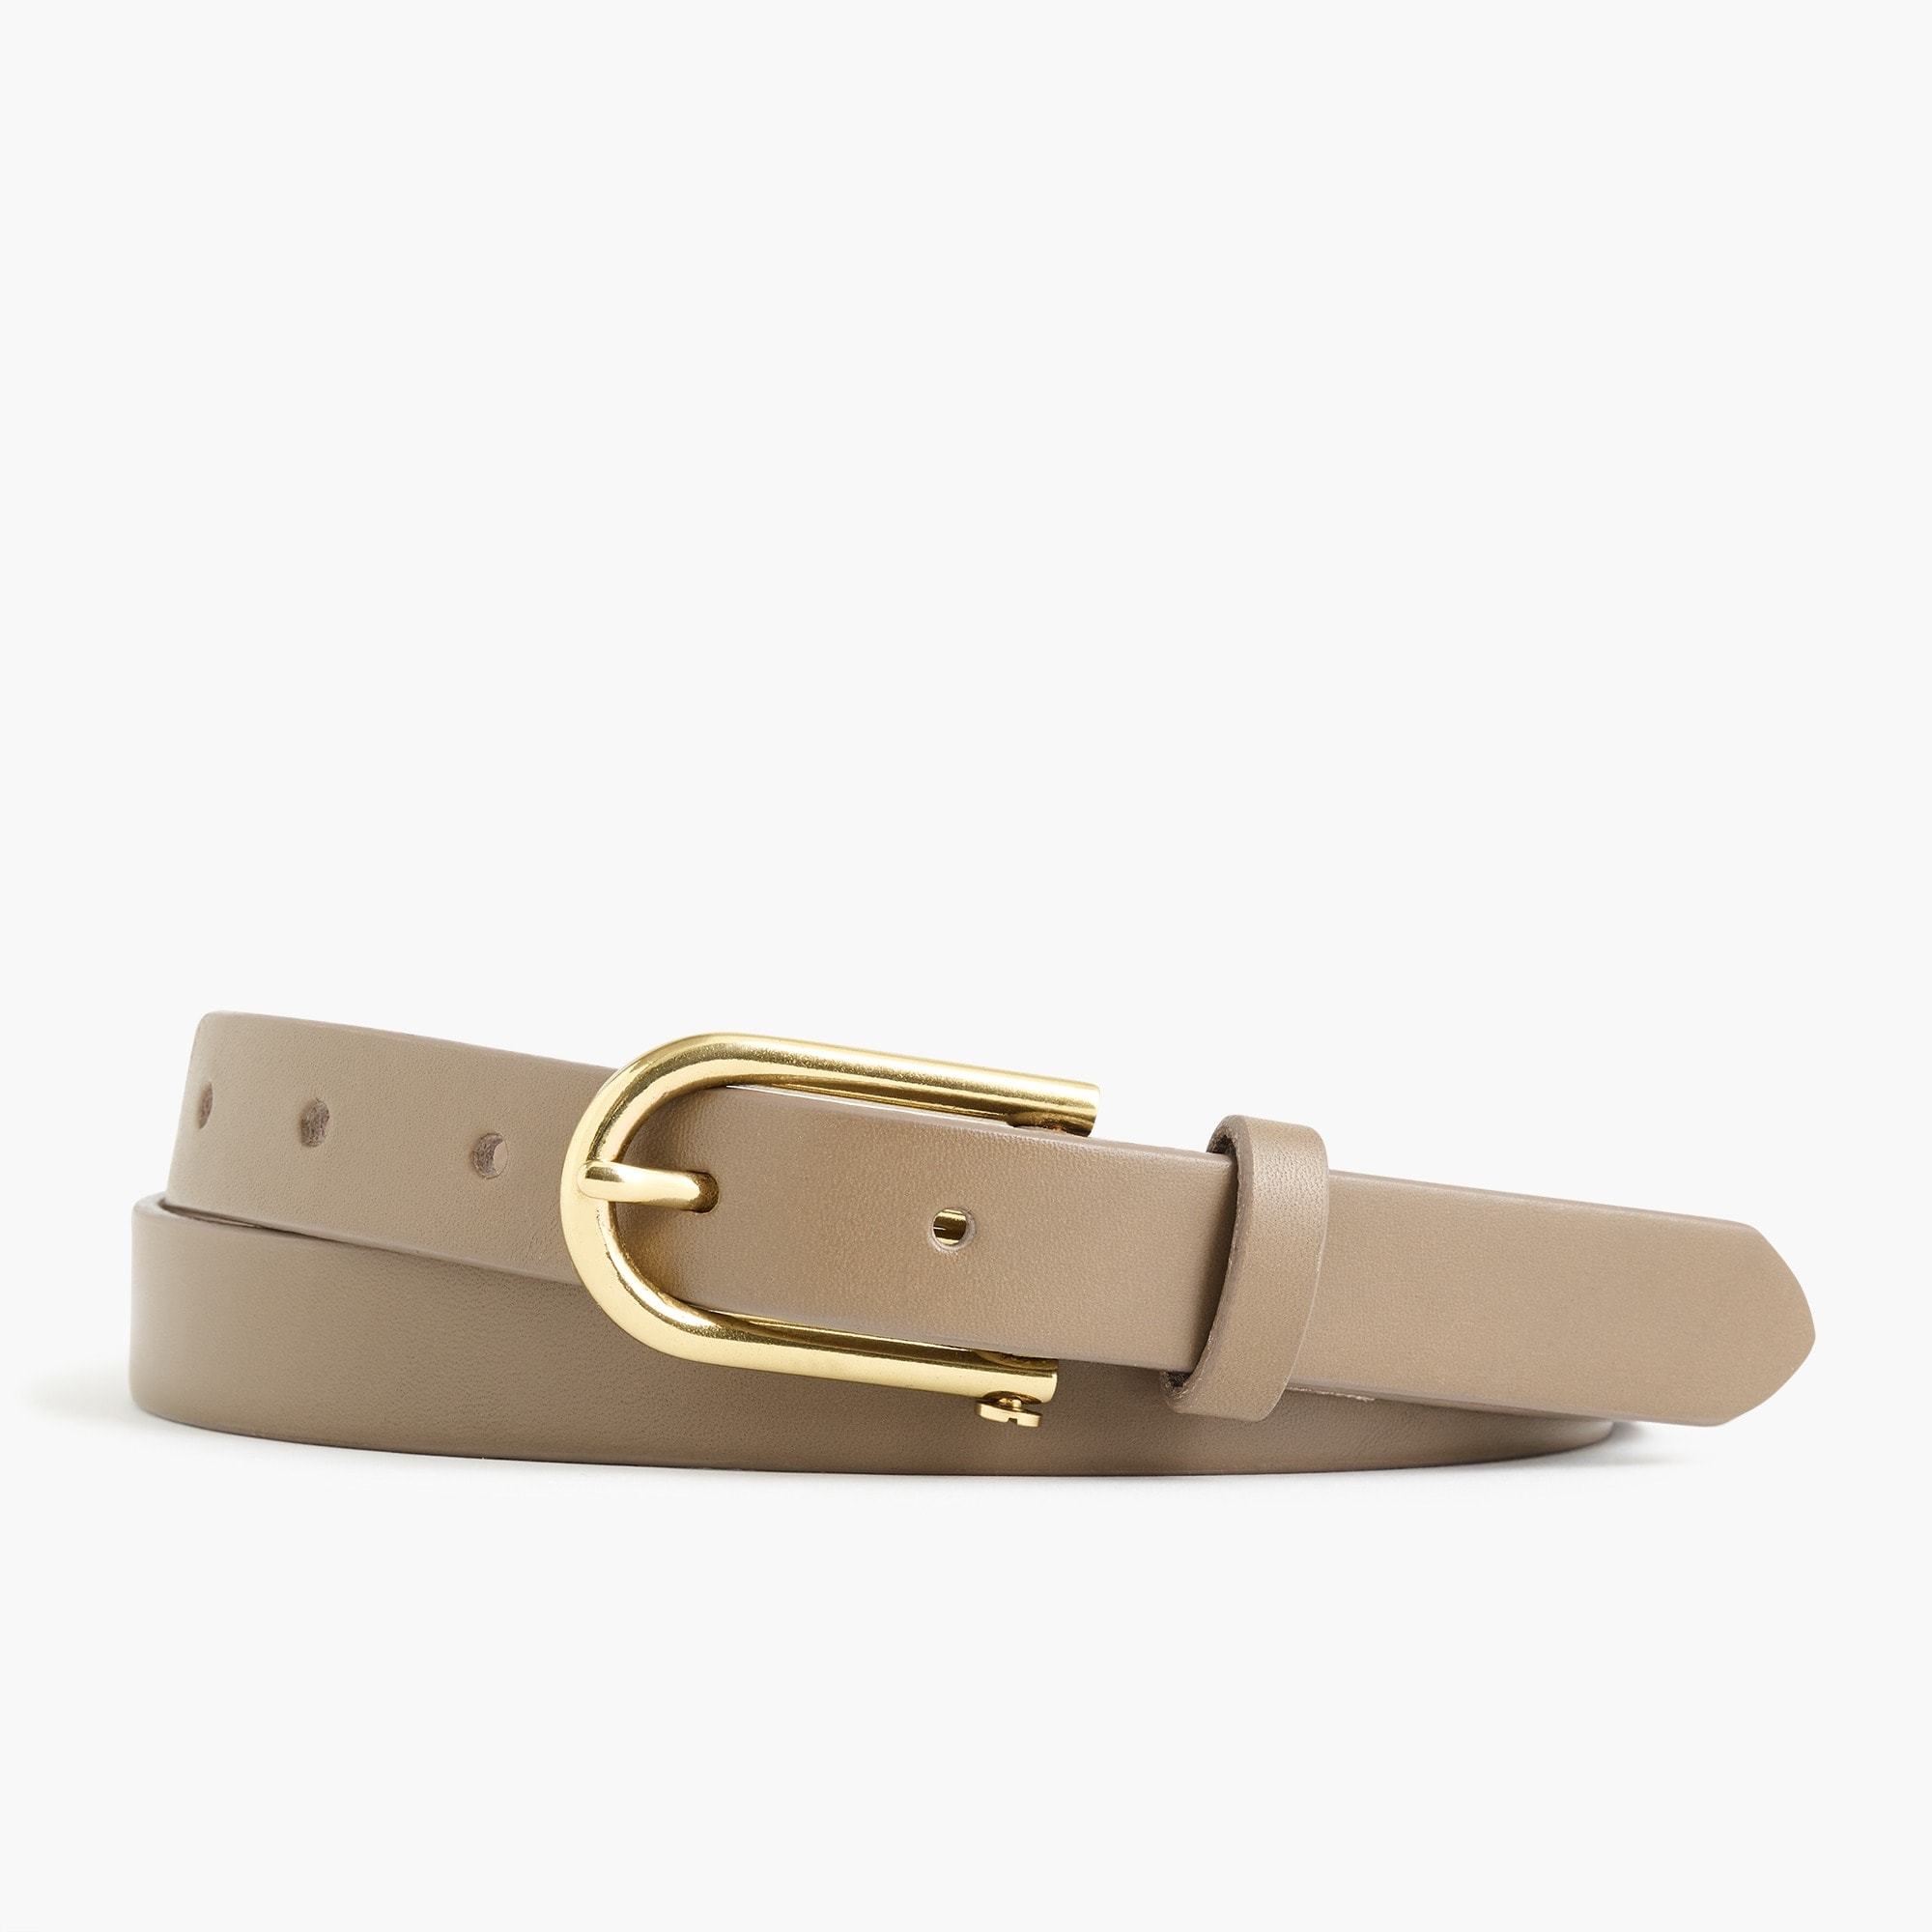 womens The Harper belt in Italian leather